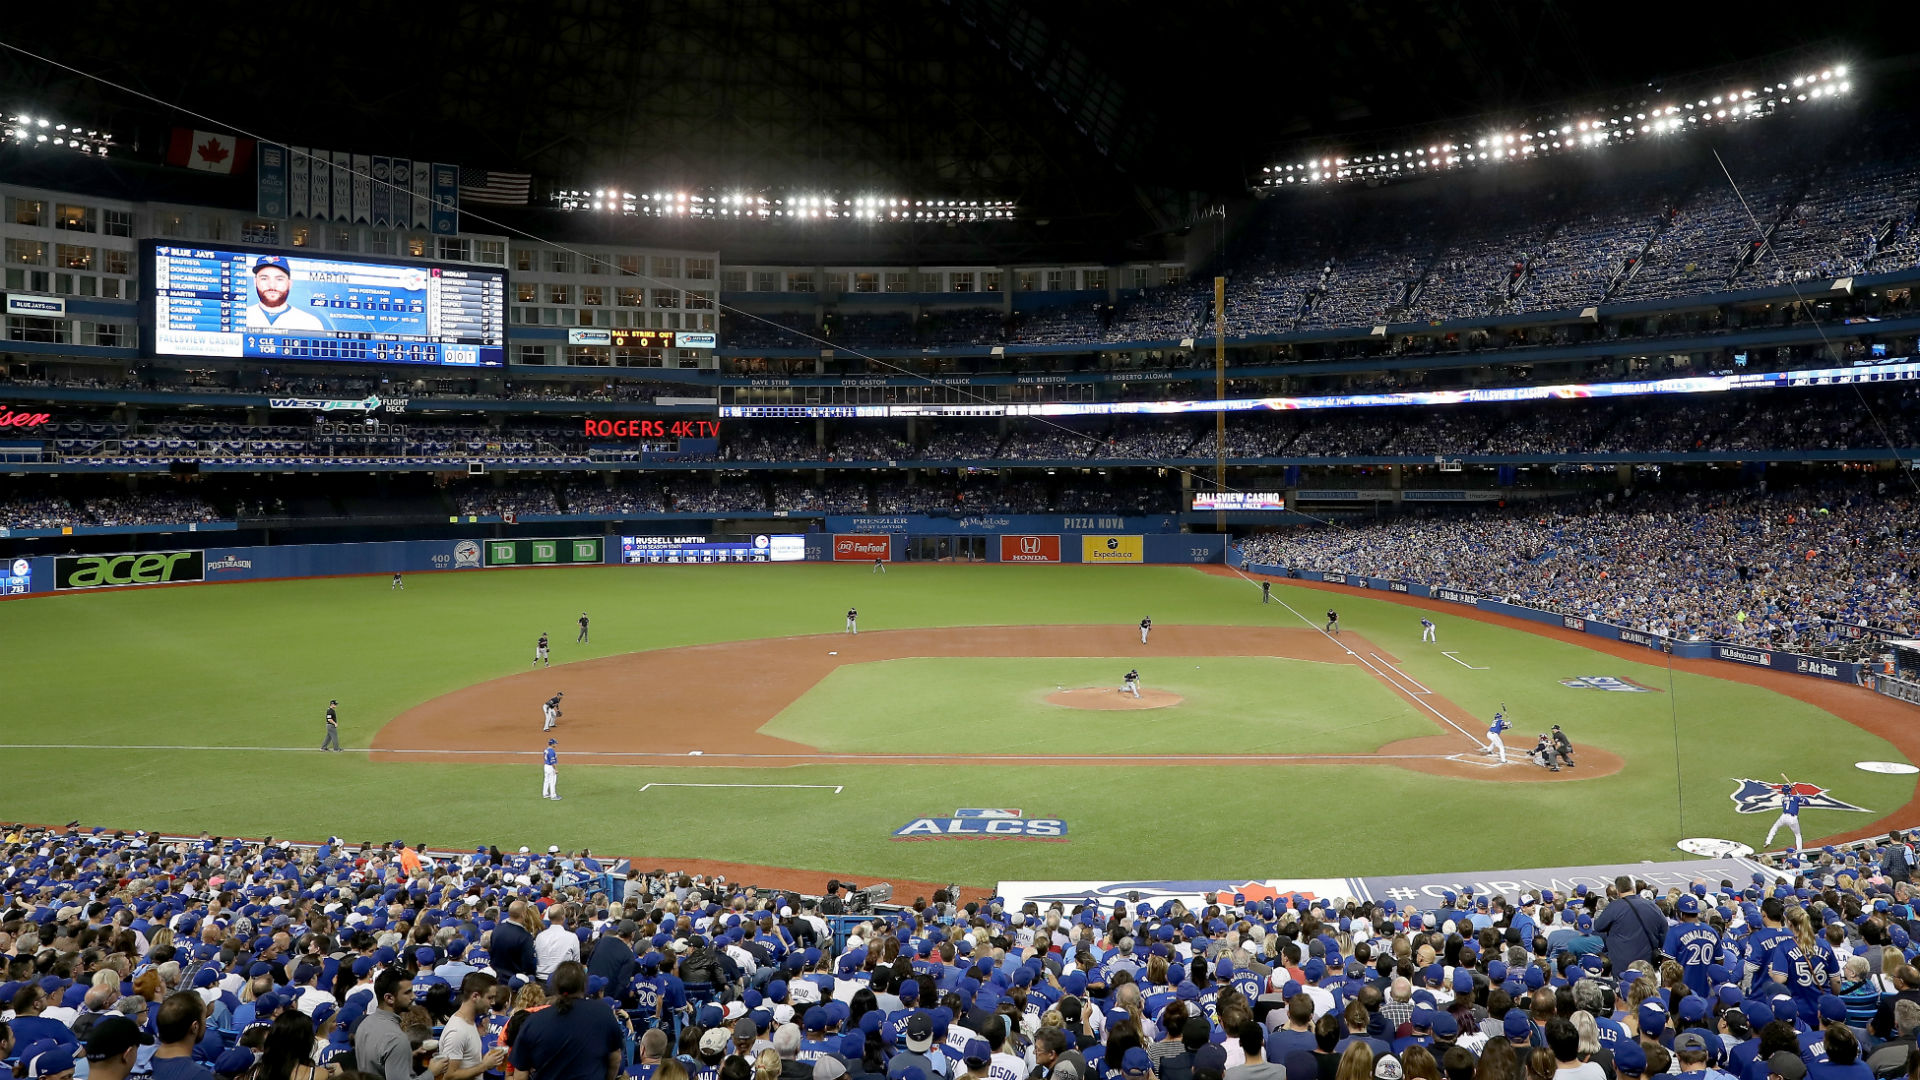 Rogers Communications considering selling Blue Jays